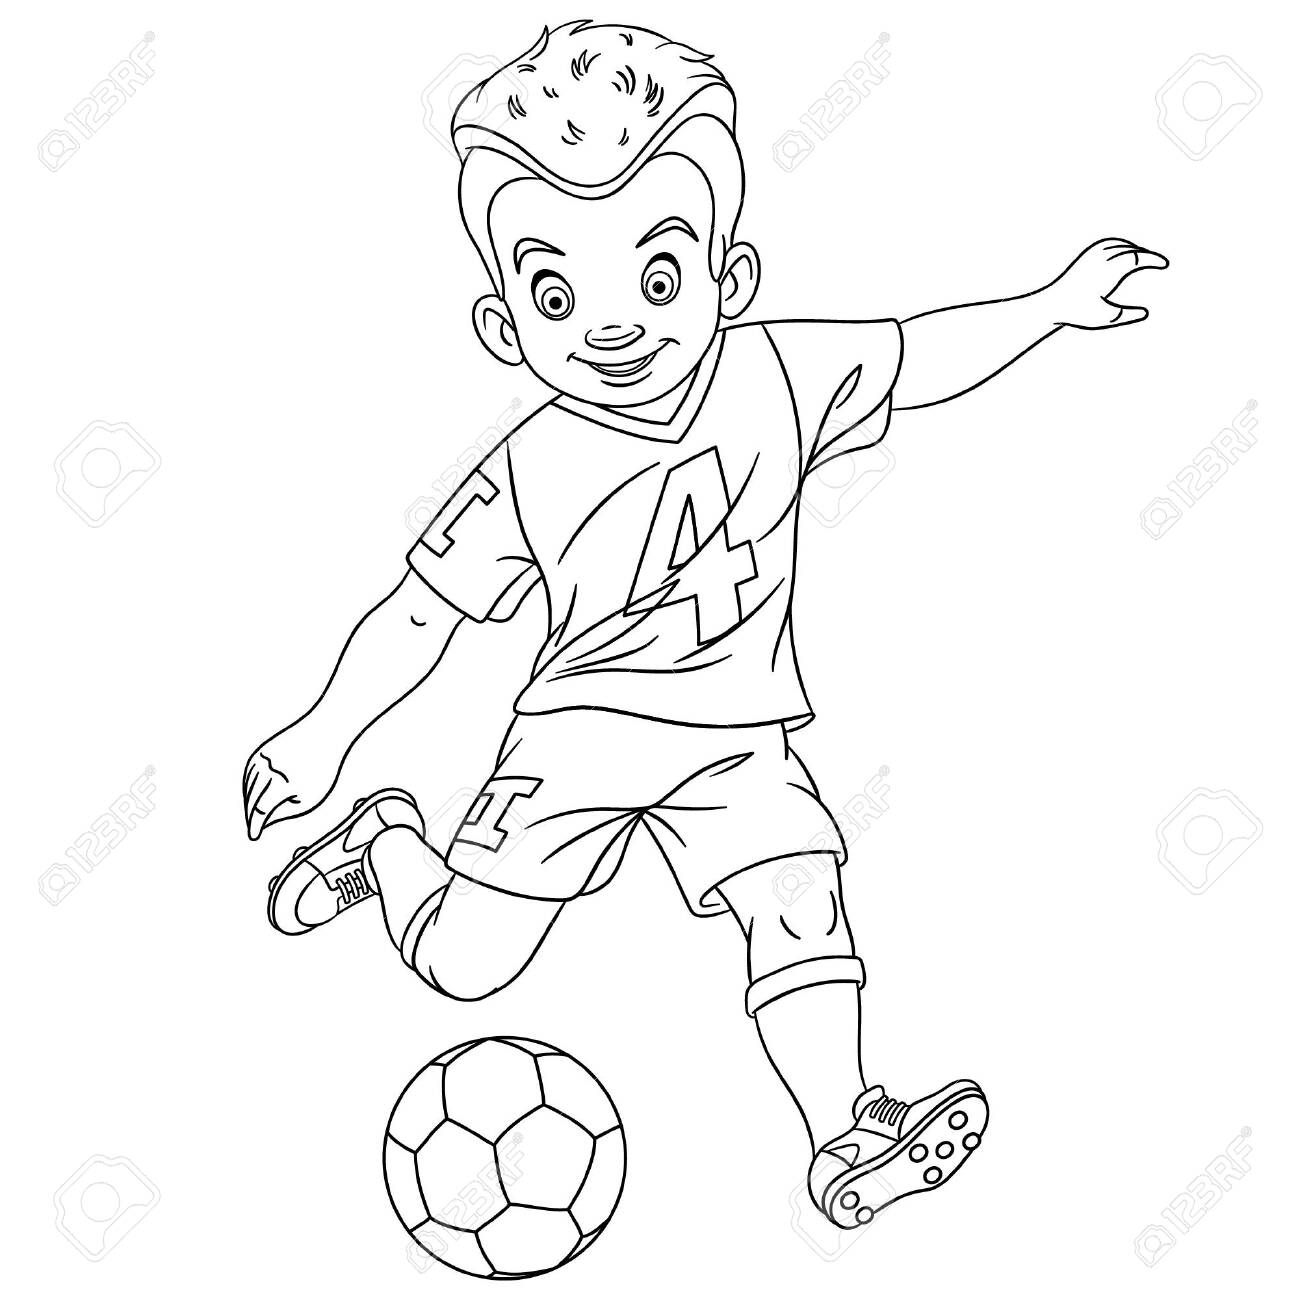 - Colouring Page. Cute Cartoon Footballer, Young Boy Playing